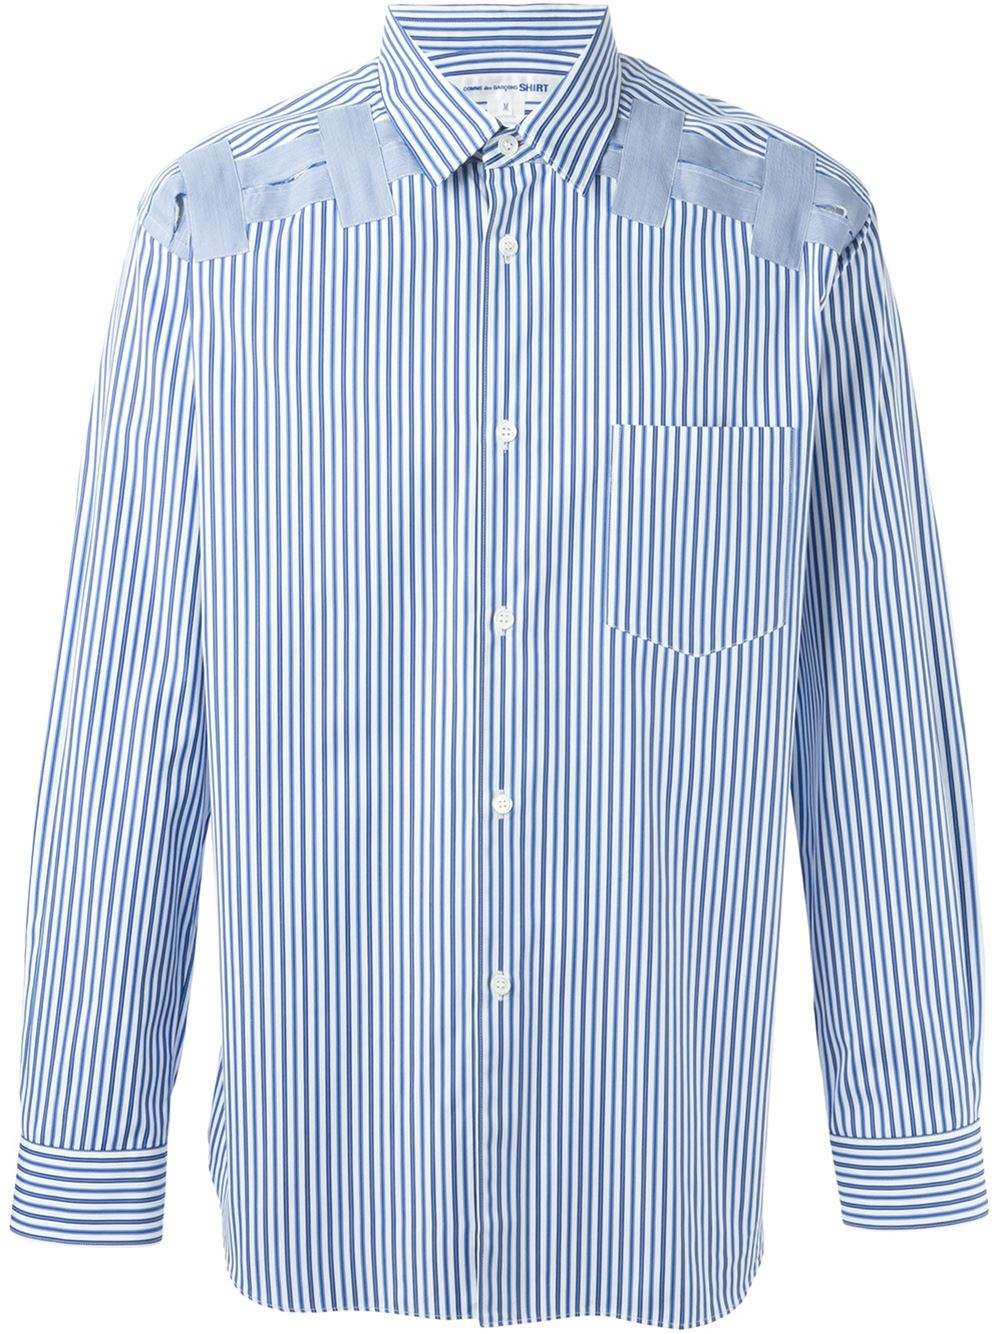 comme des gar ons striped patch shirt in blue for men lyst. Black Bedroom Furniture Sets. Home Design Ideas